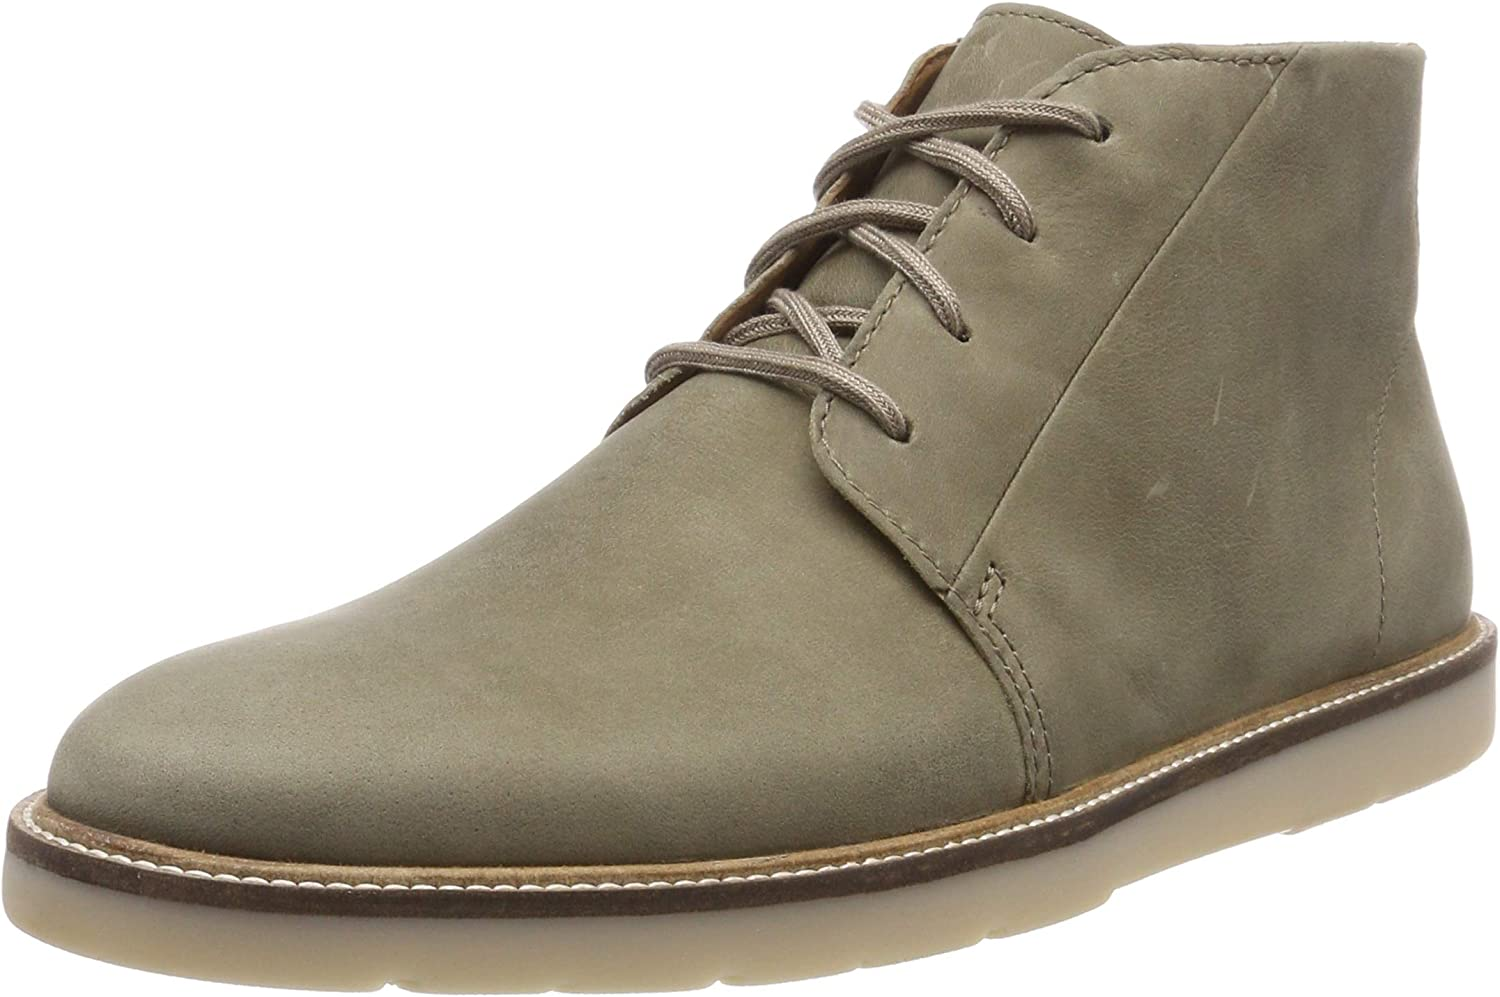 error Sillón Tierra  Clarks Grandin Mid, Men's Chukka Boots, Green (Olive Leather -), 10.5 UK  (45 EU): Amazon.co.uk: Shoes & Bags